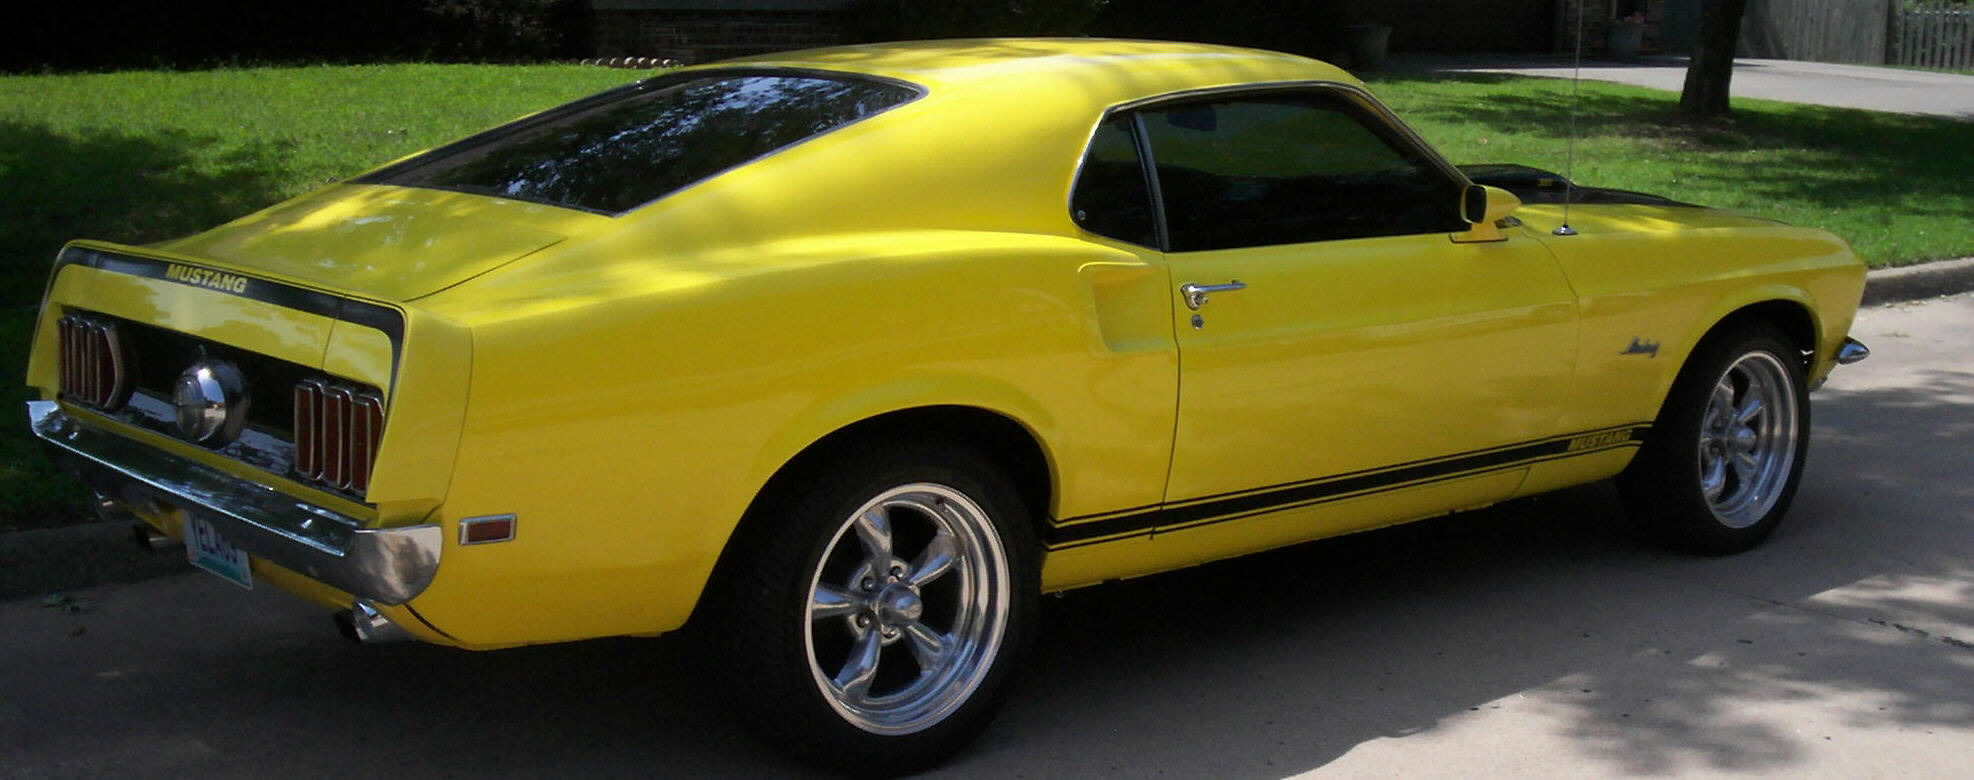 1969 Ford Mustang Fastback Sold Yellow Black Vinyl